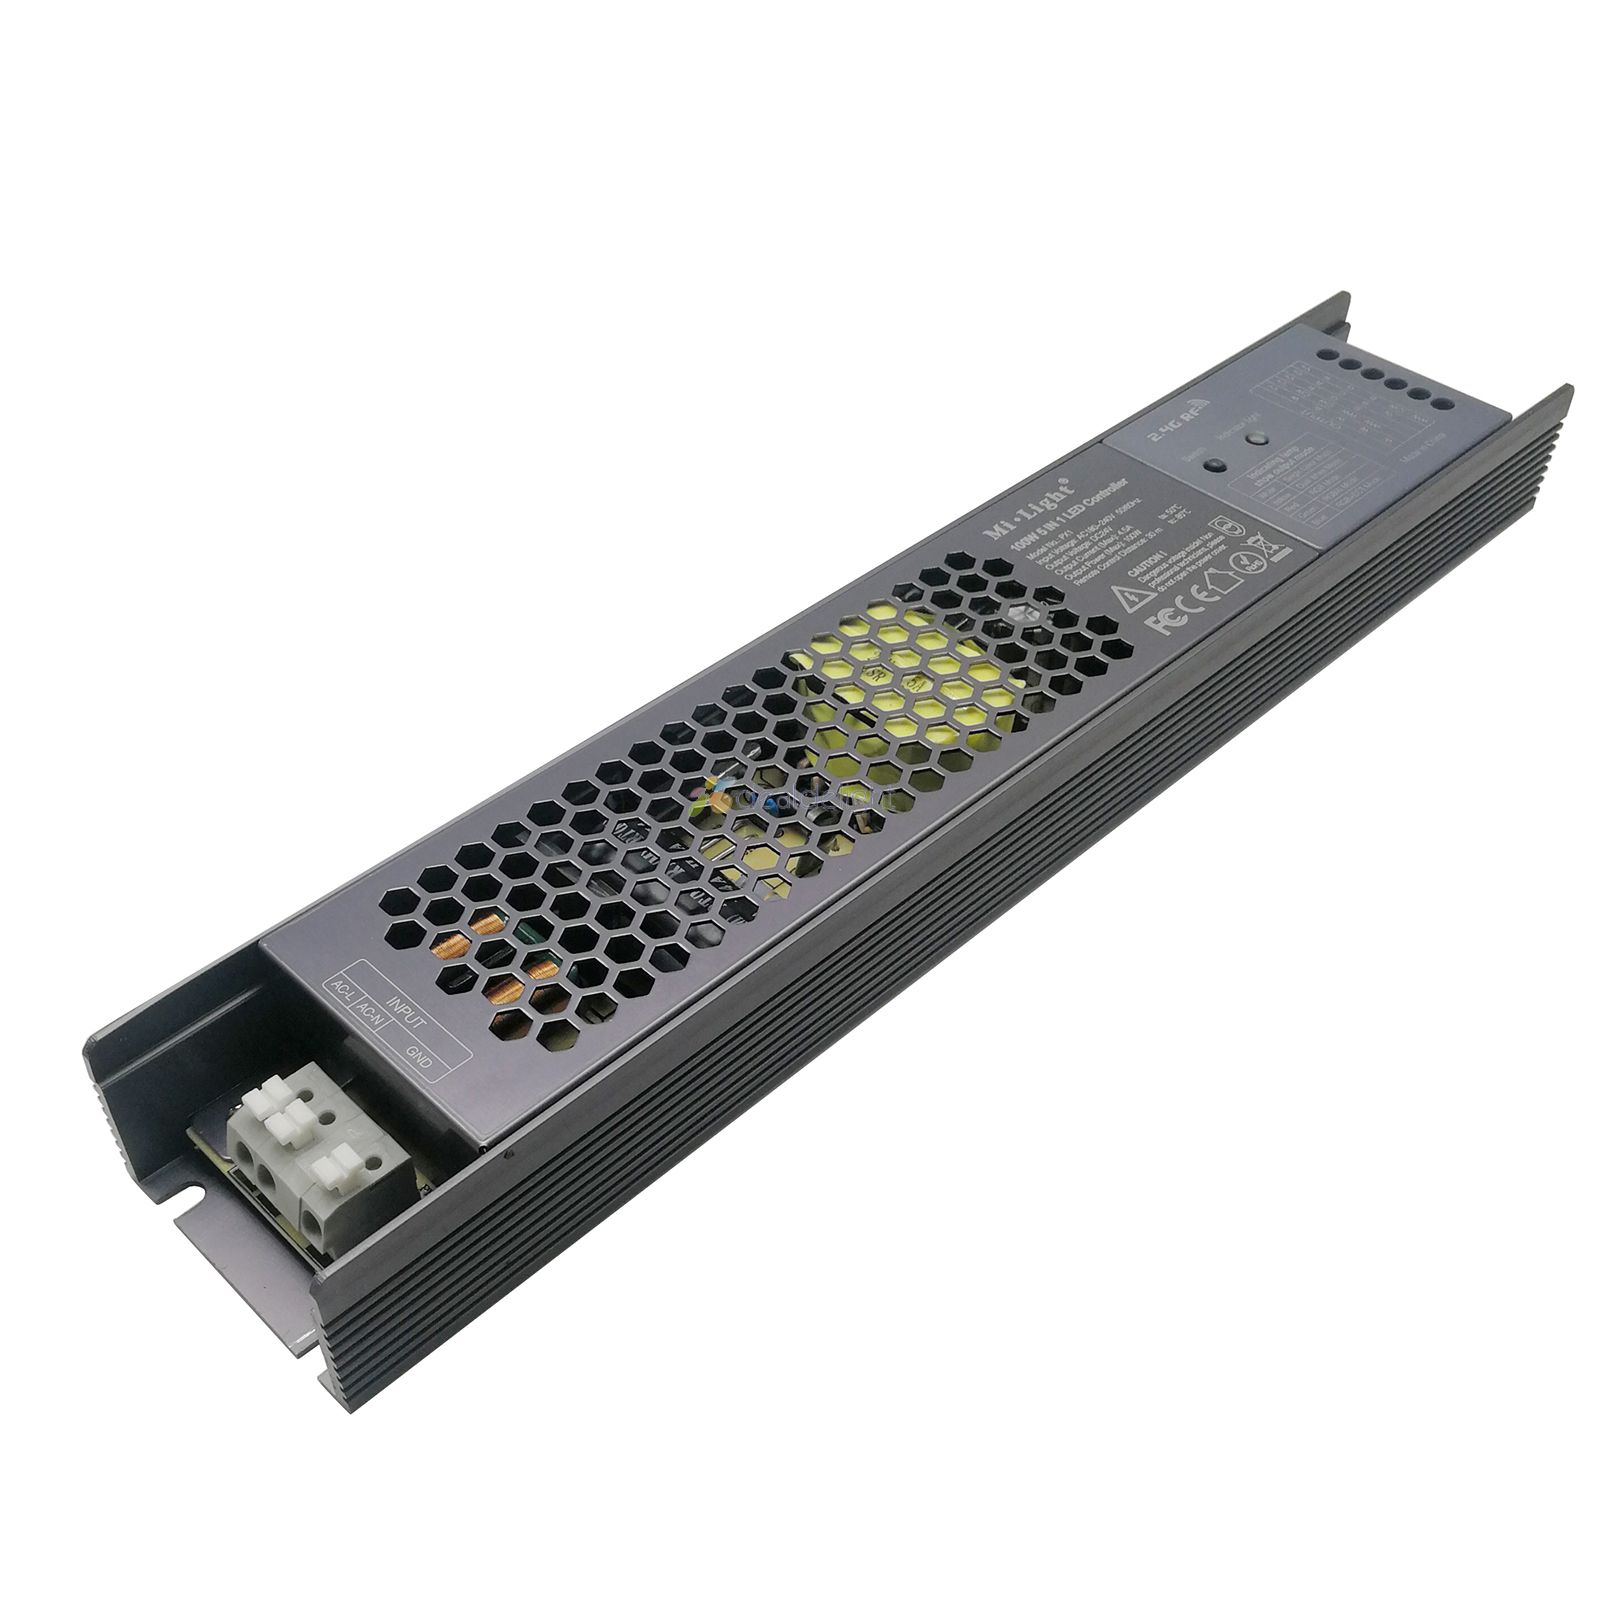 Miboxer 100W <font><b>5</b></font> IN <font><b>1</b></font> LED Controller PX1 <font><b>2</b></font>.4G RF/APP/alexa Goolge Control Built-in driver Controller For DC24V LED strip light image